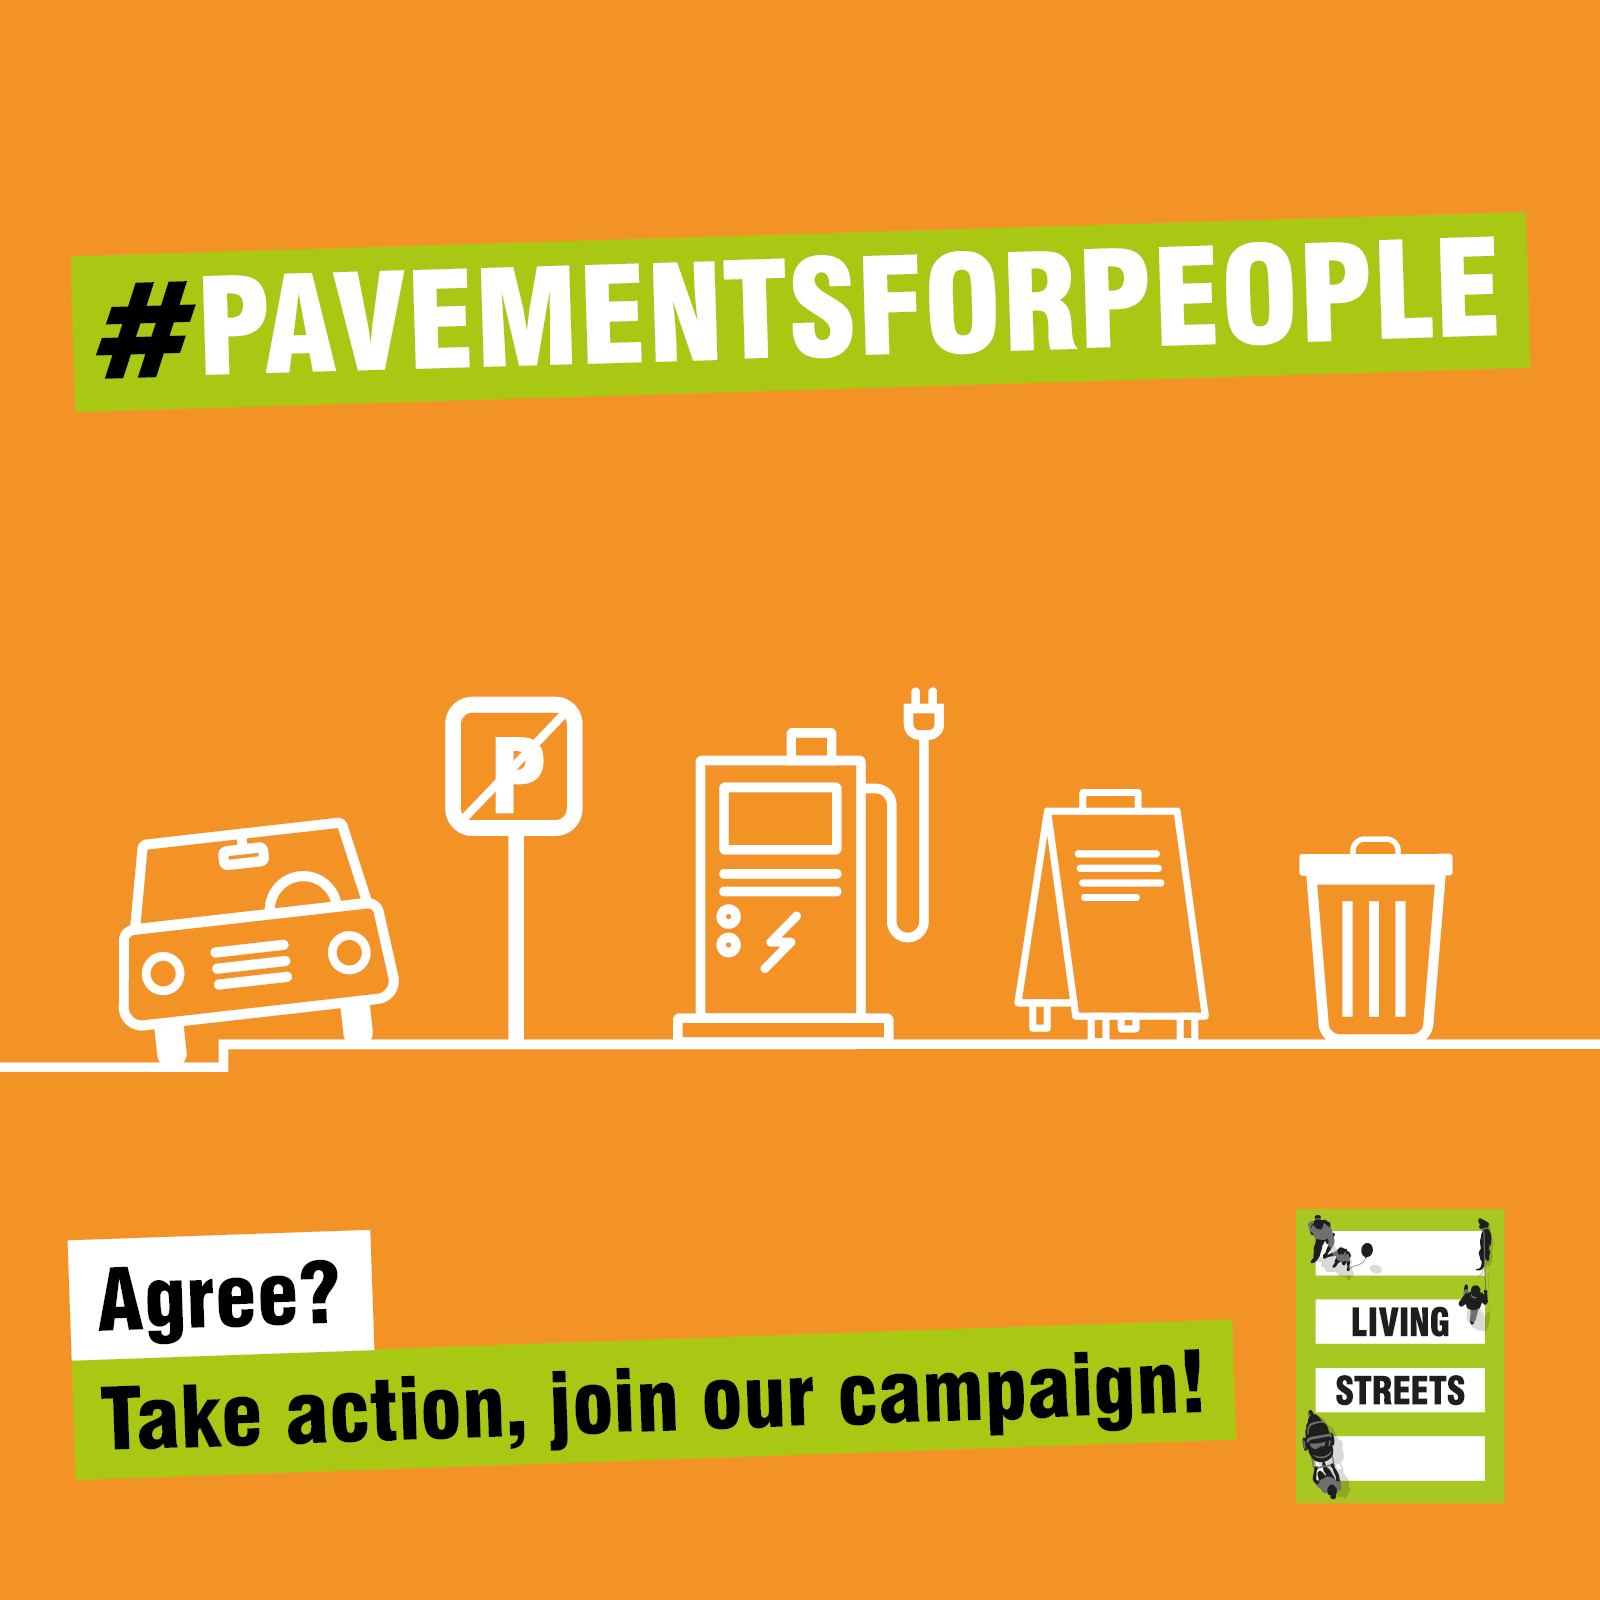 Pavements are for people